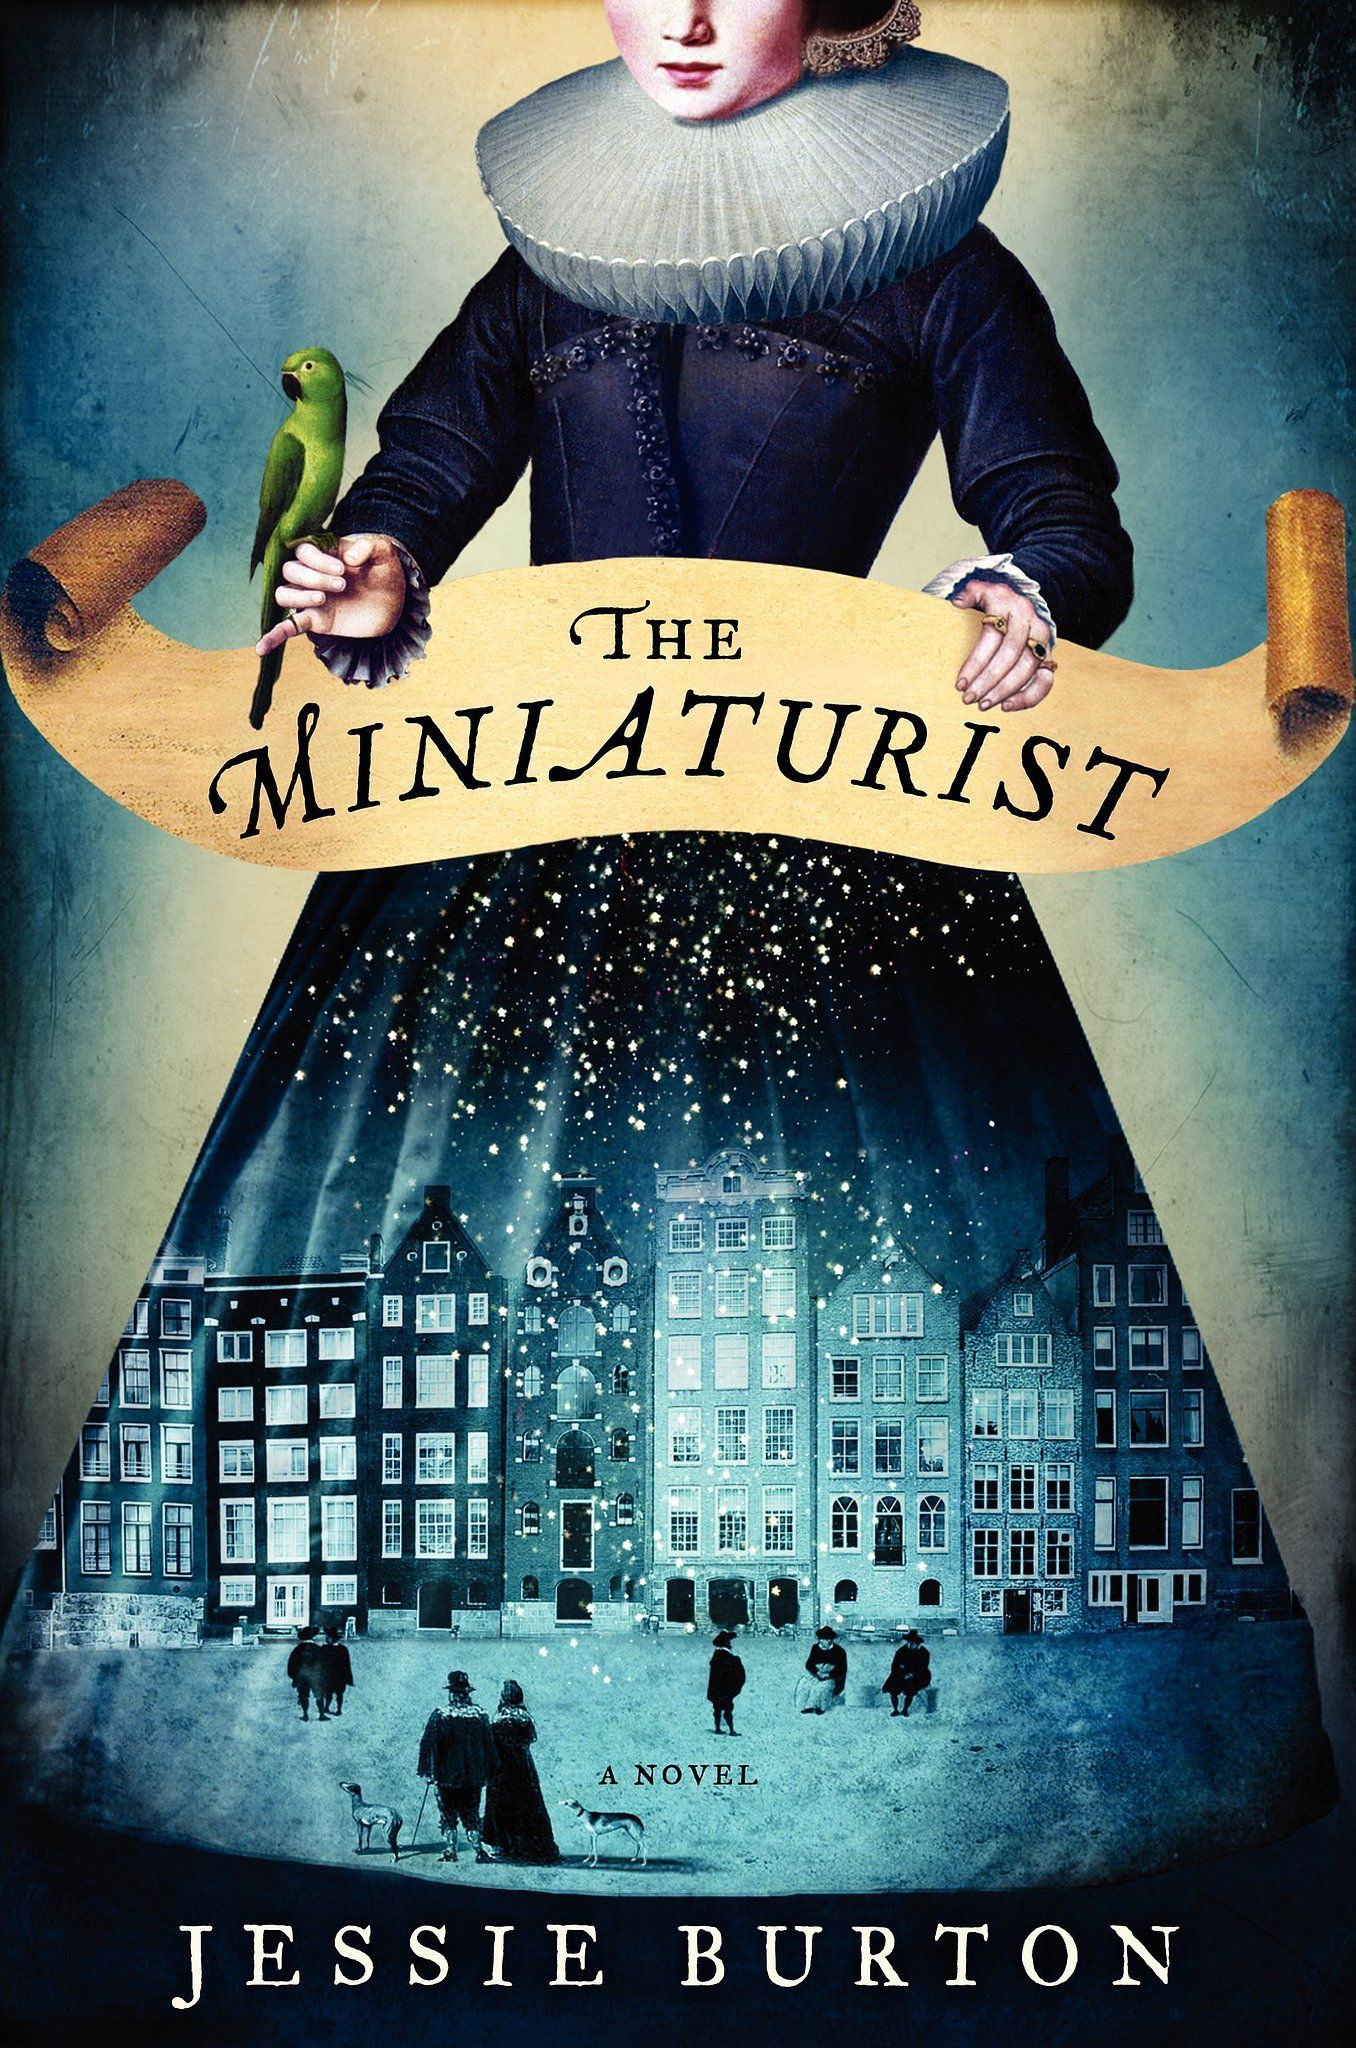 """Jessie Burton's novel The Miniaturist is a mix of fantasy, mystery, historical fiction, and romance set in 17th century Amsterdam about a young new wife who hires a miniaturist artist to furnish a dollhouse-sized replica of her new home. Called """"a magnificent story of love and obsession, betrayal and retribution, appearance and truth."""" Out Aug. 26"""